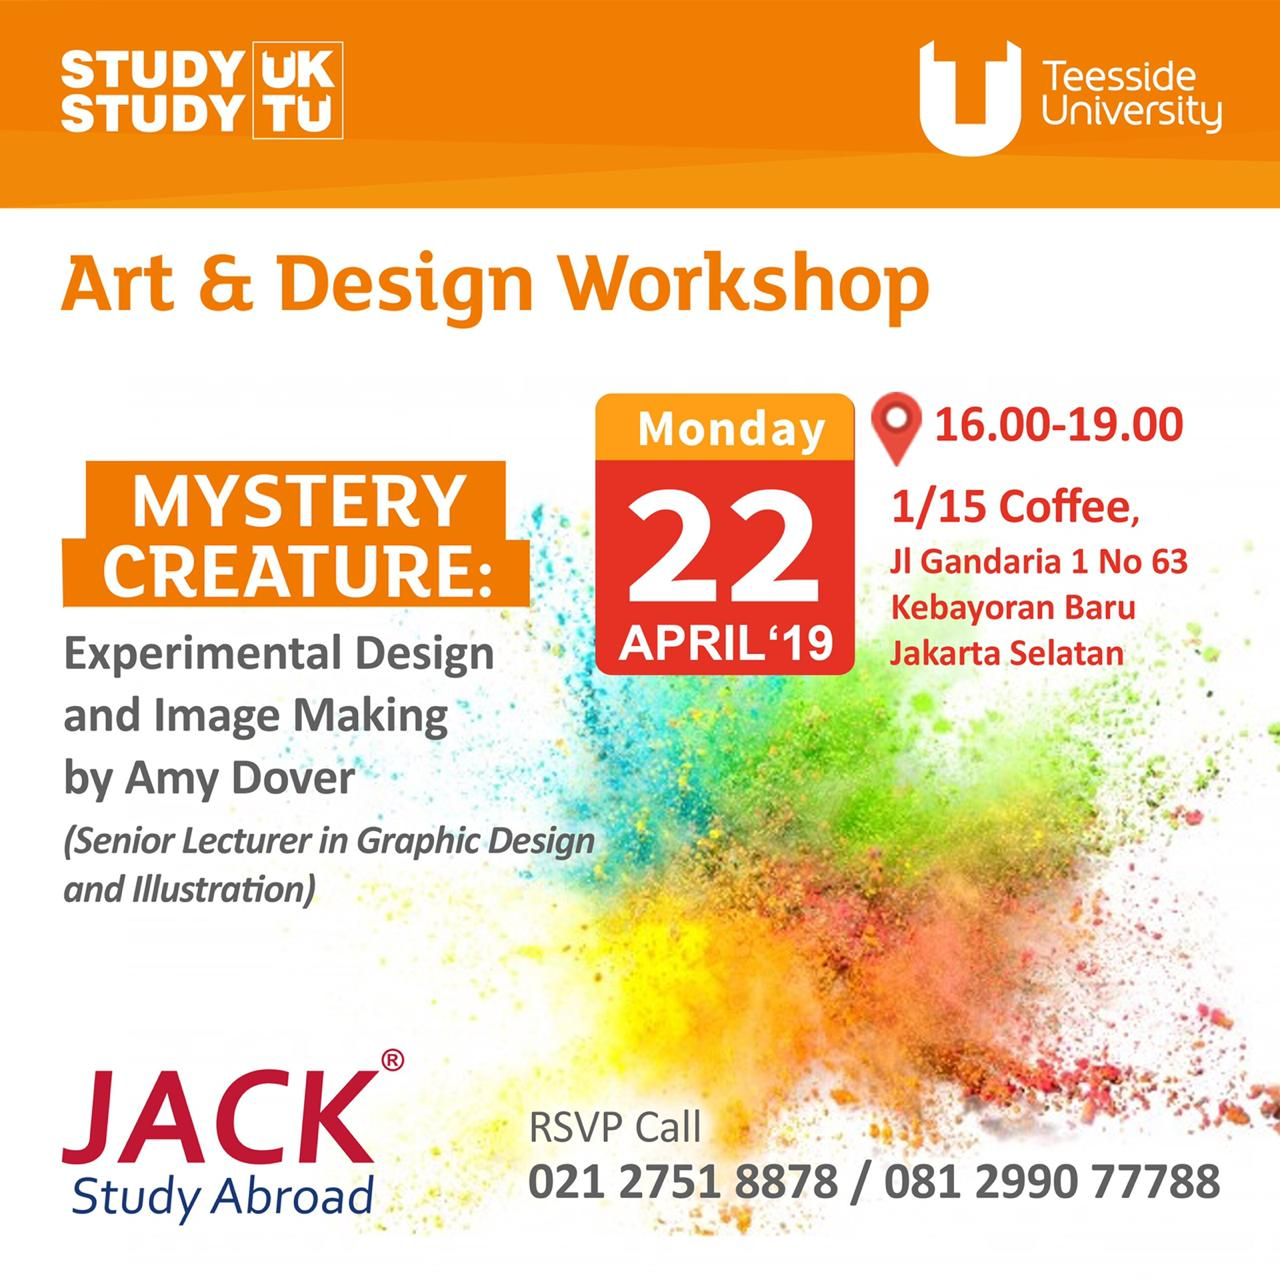 art & design workshop with teesside university